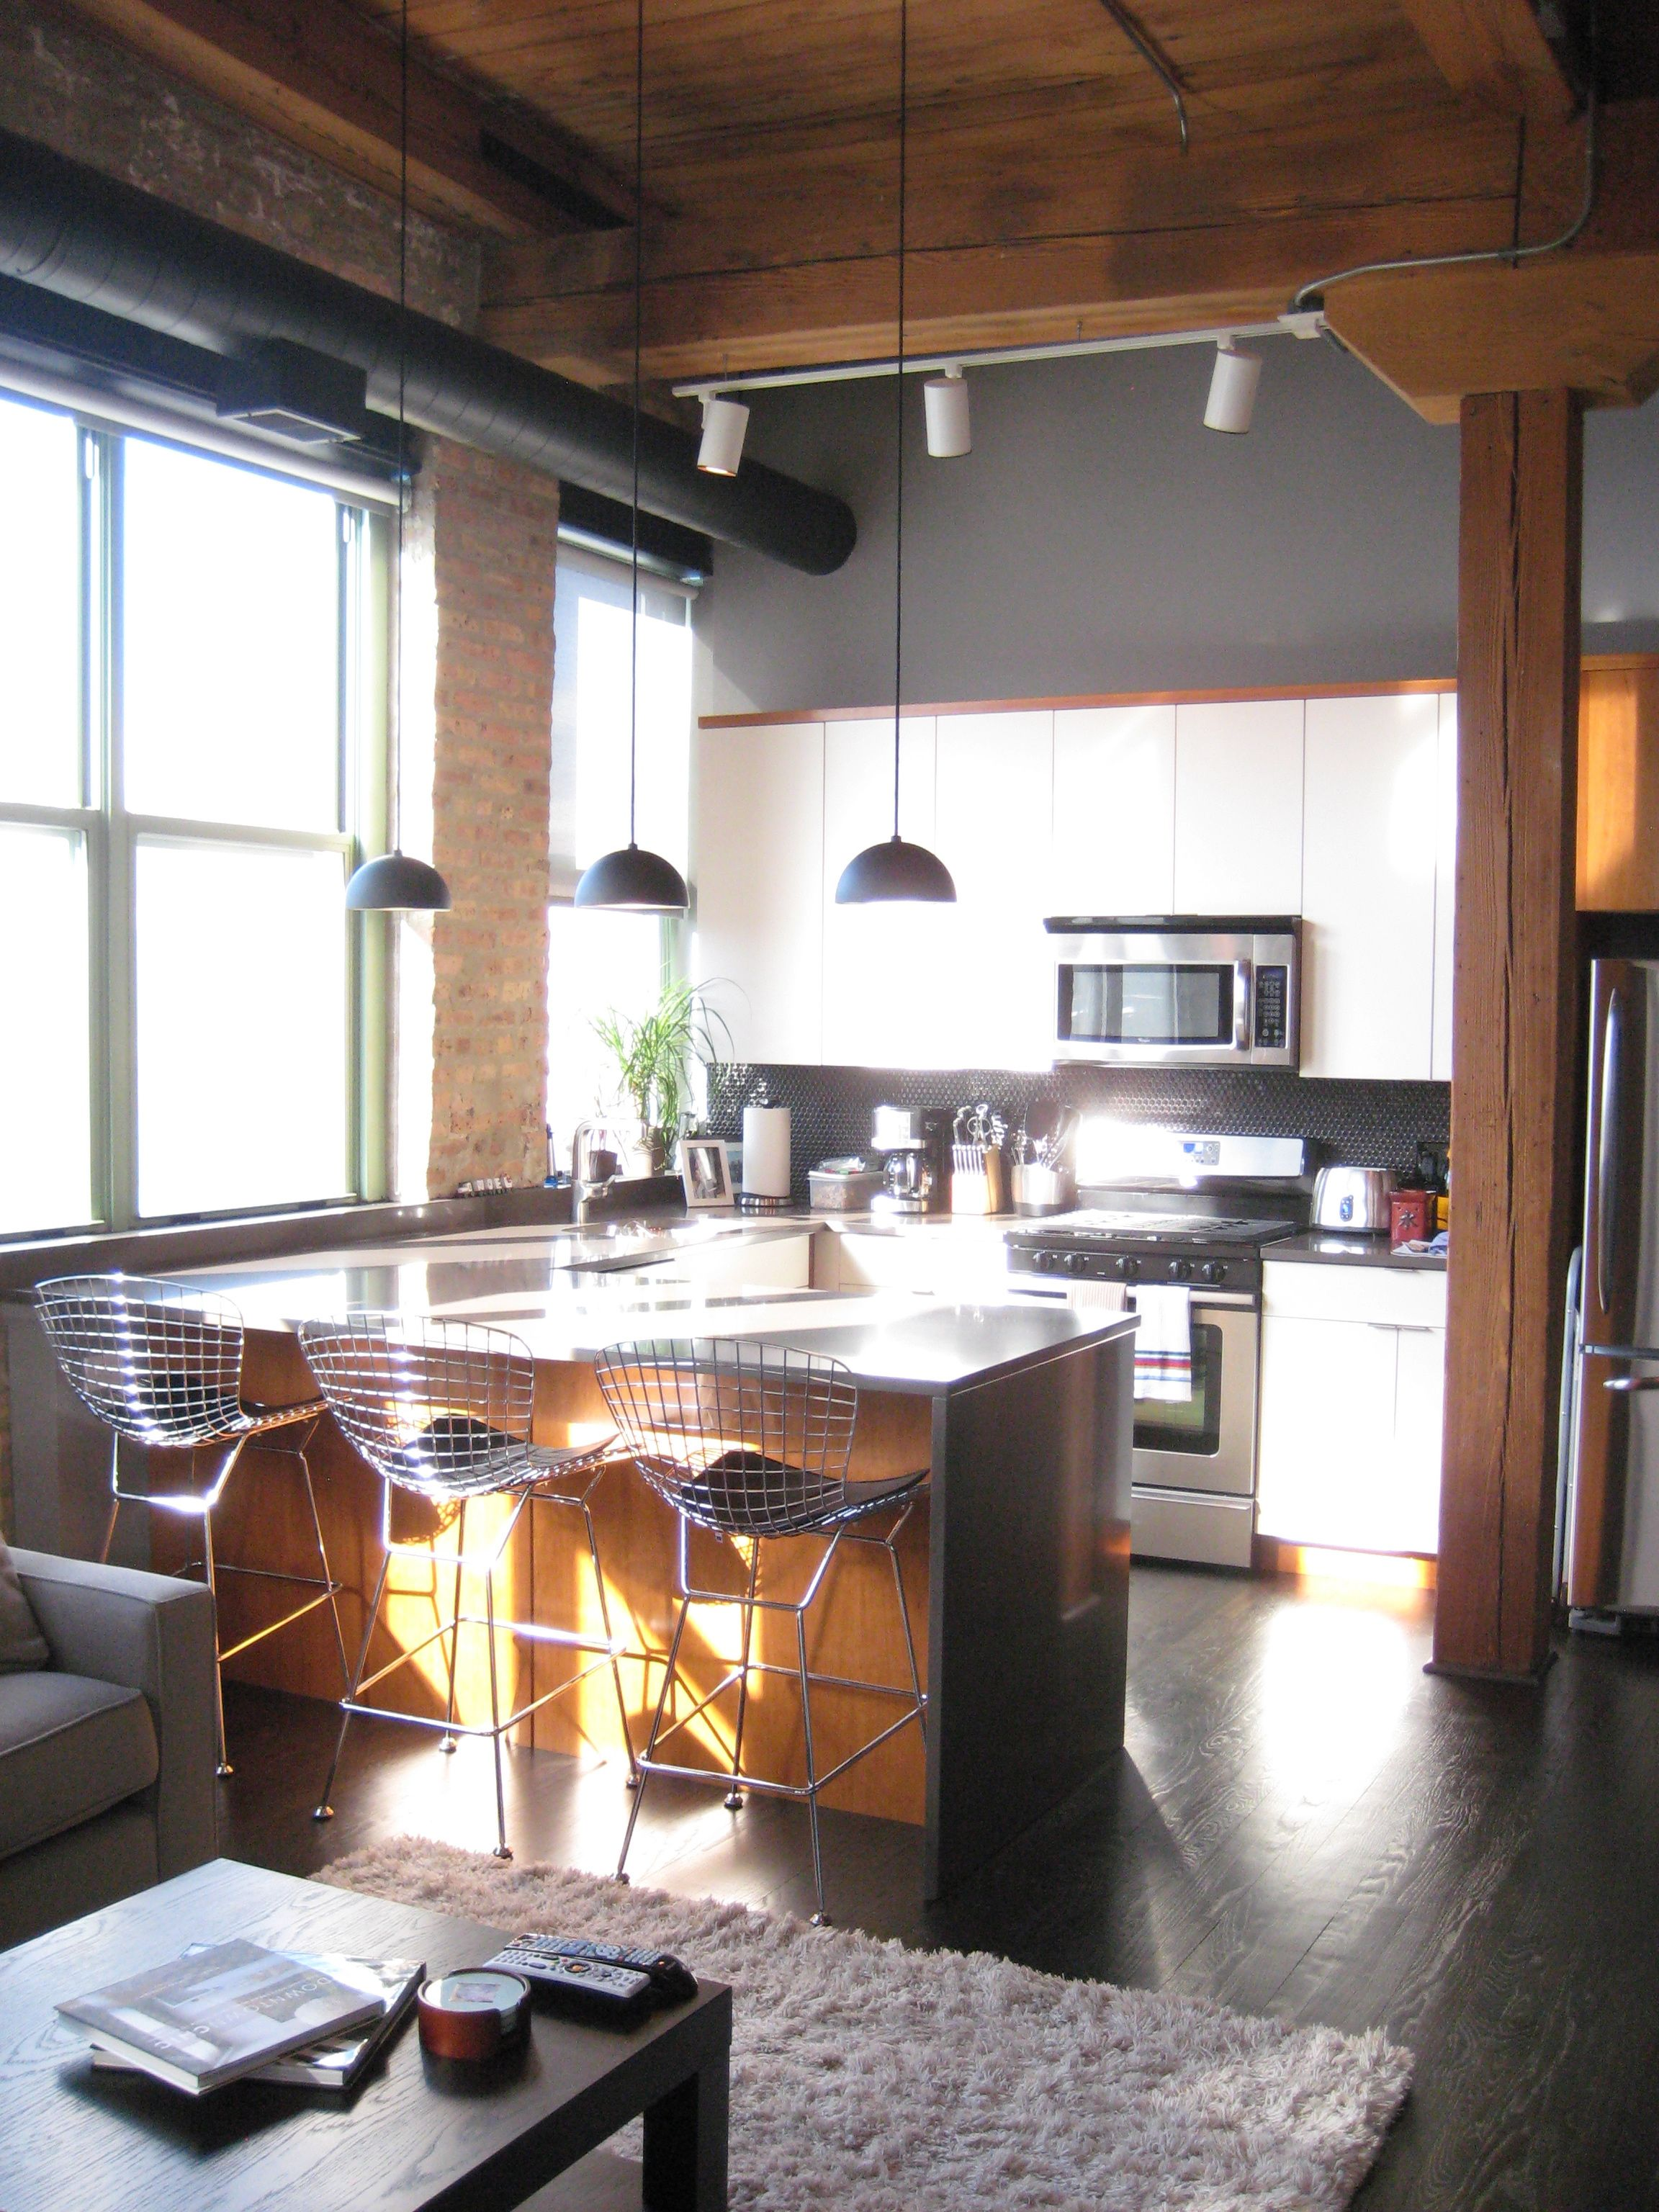 This Bucktown Loft For Rent Has A Spiral Staircase Leading To A Rooftop Deck 14 Foot Ceilings Wi Chicago Apartments For Rent Chicago Apartment Lofts For Rent